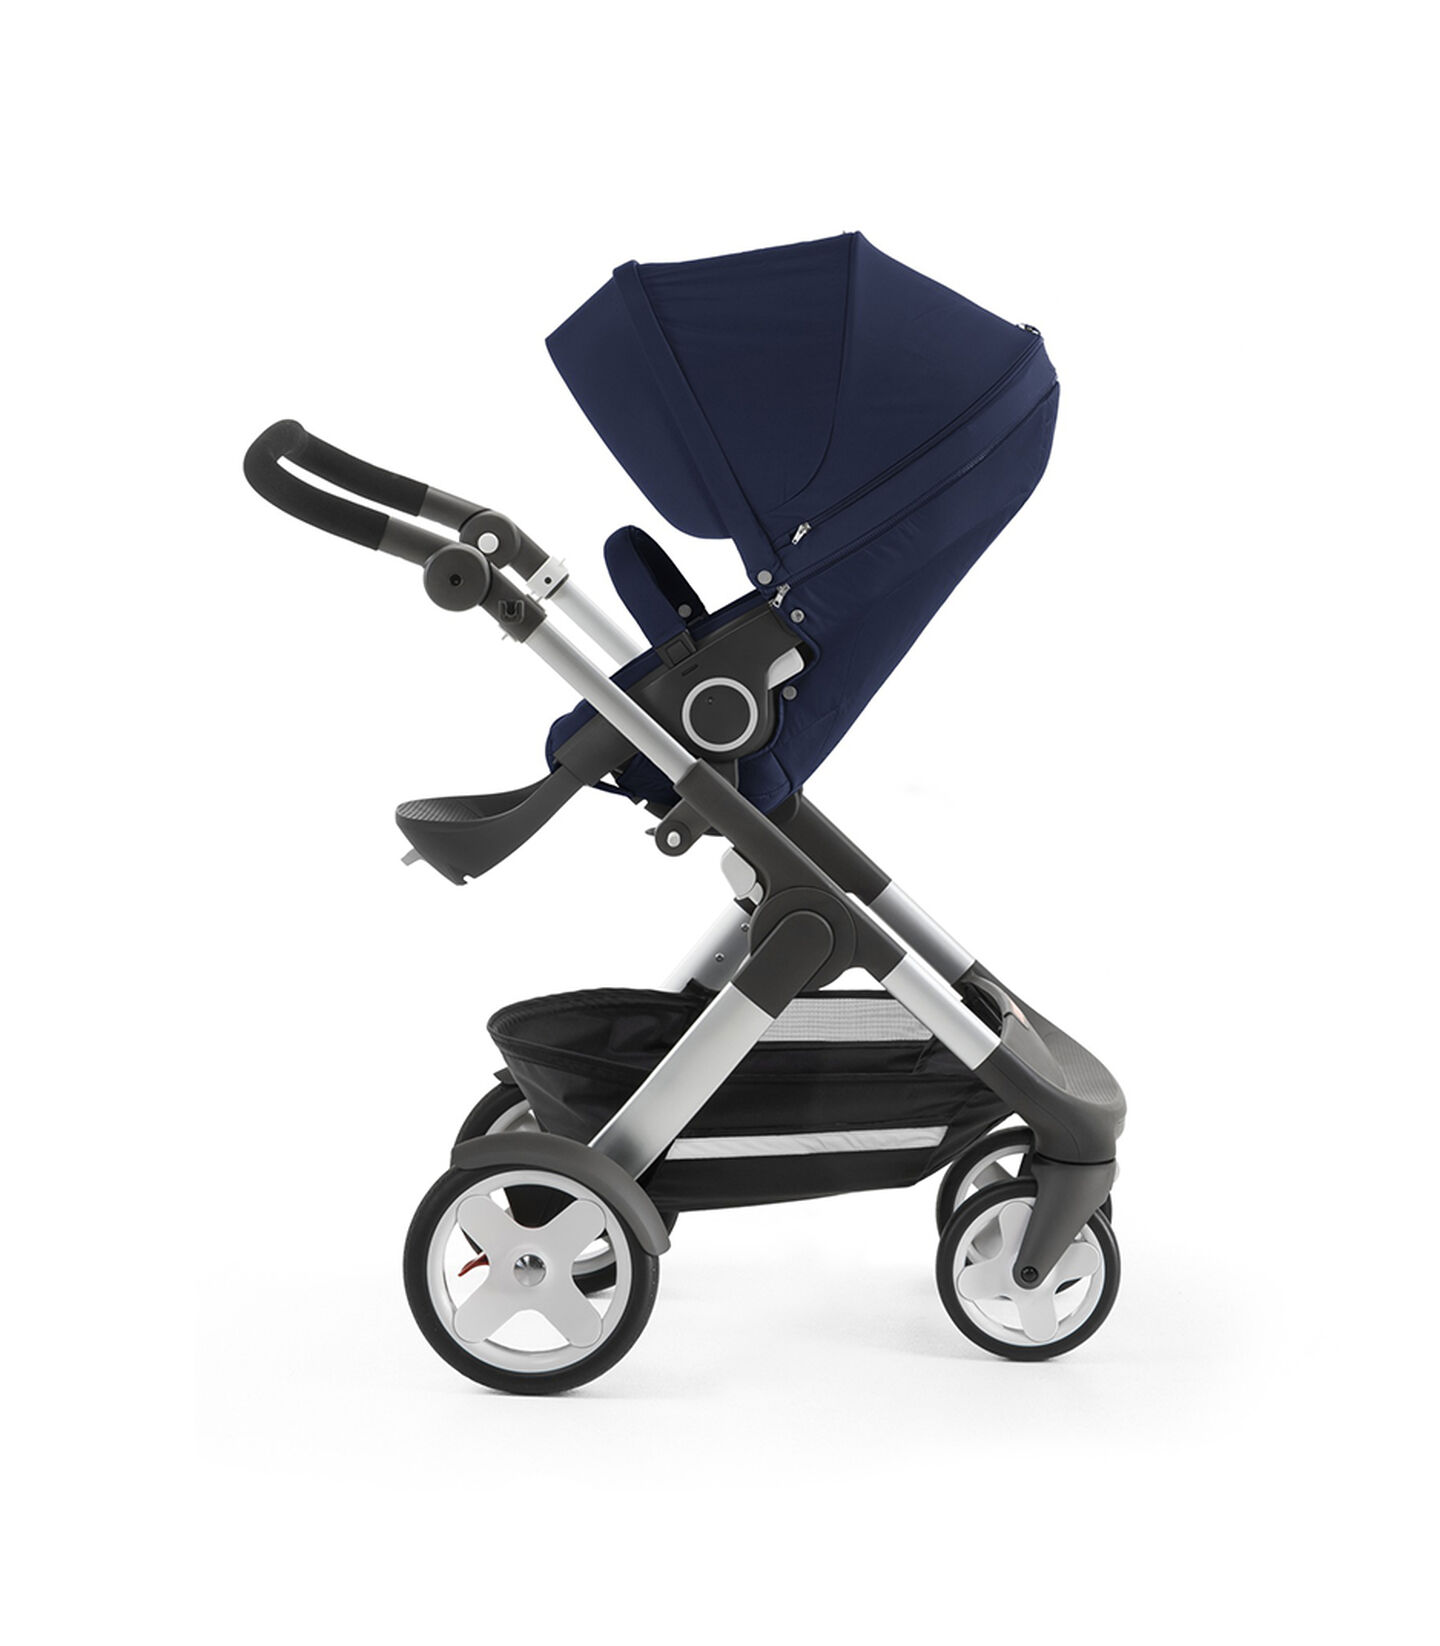 Stokke® Trailz™ with Stokke® Stroller Seat, Deep Blue. Classic Wheels. view 2